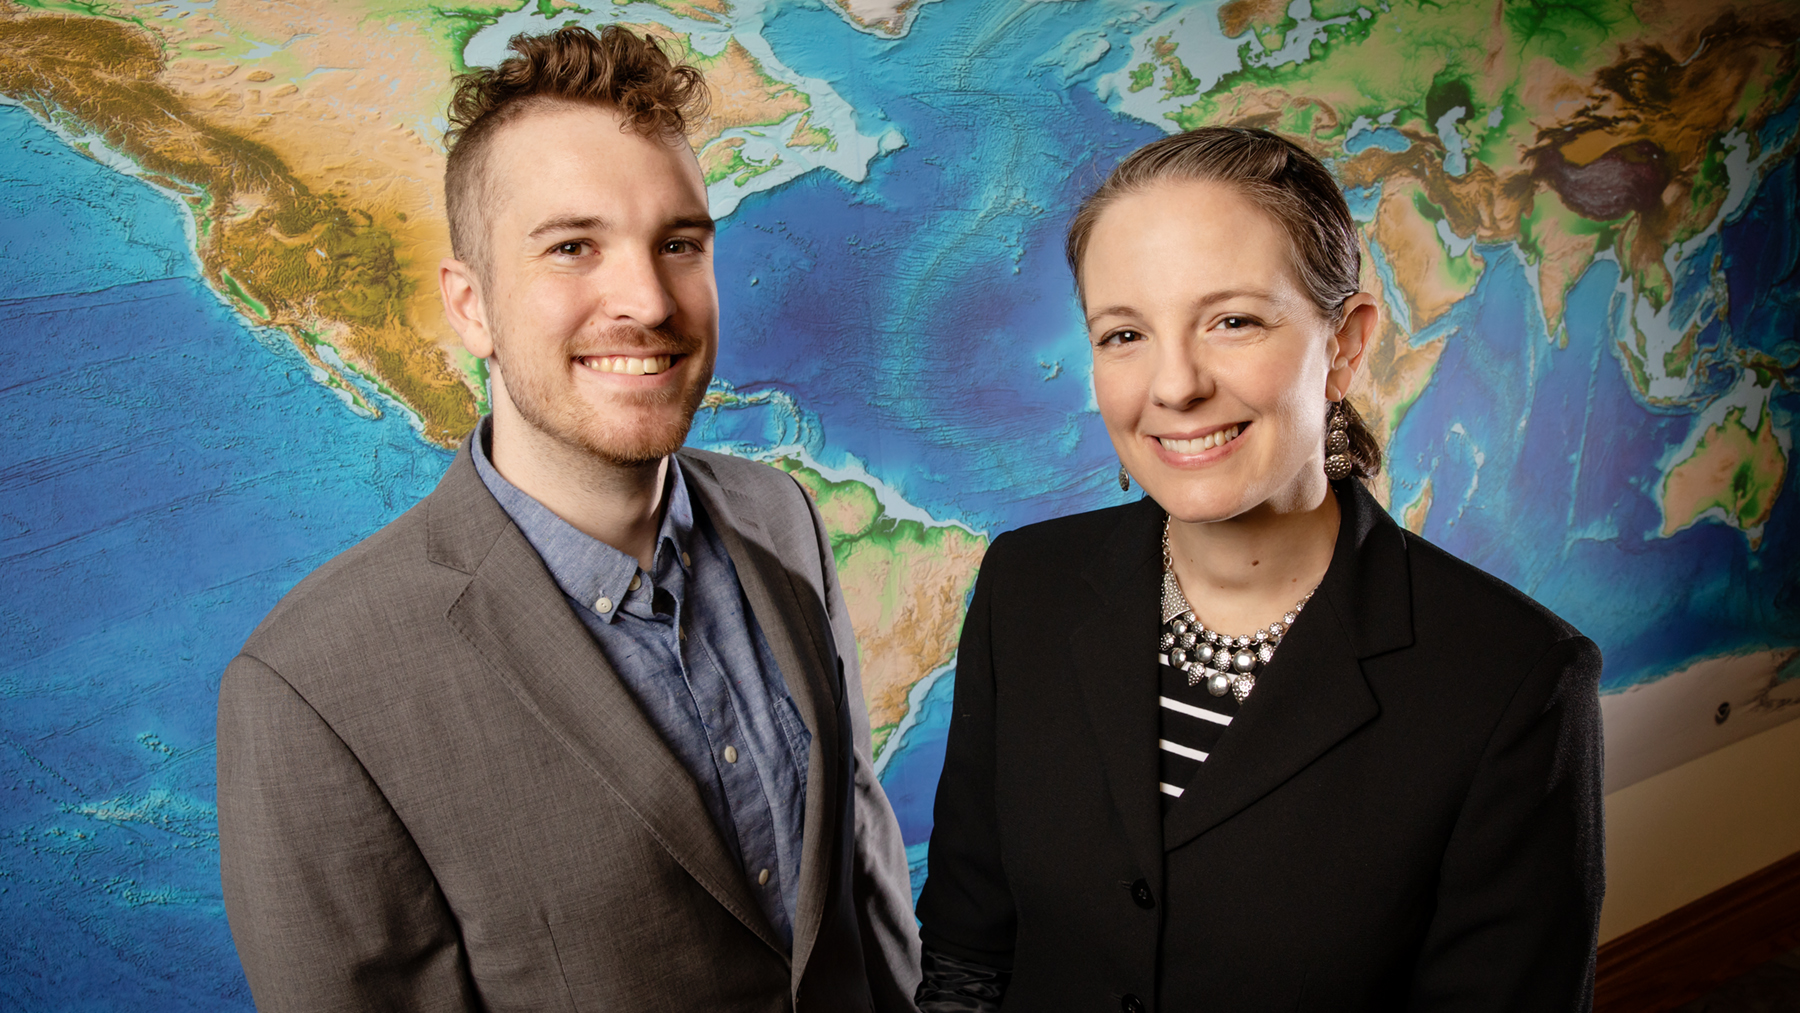 University of Illinois geologists Jack Albright and professor Patricia Gregg.  Photo by L. Brian Stauffer